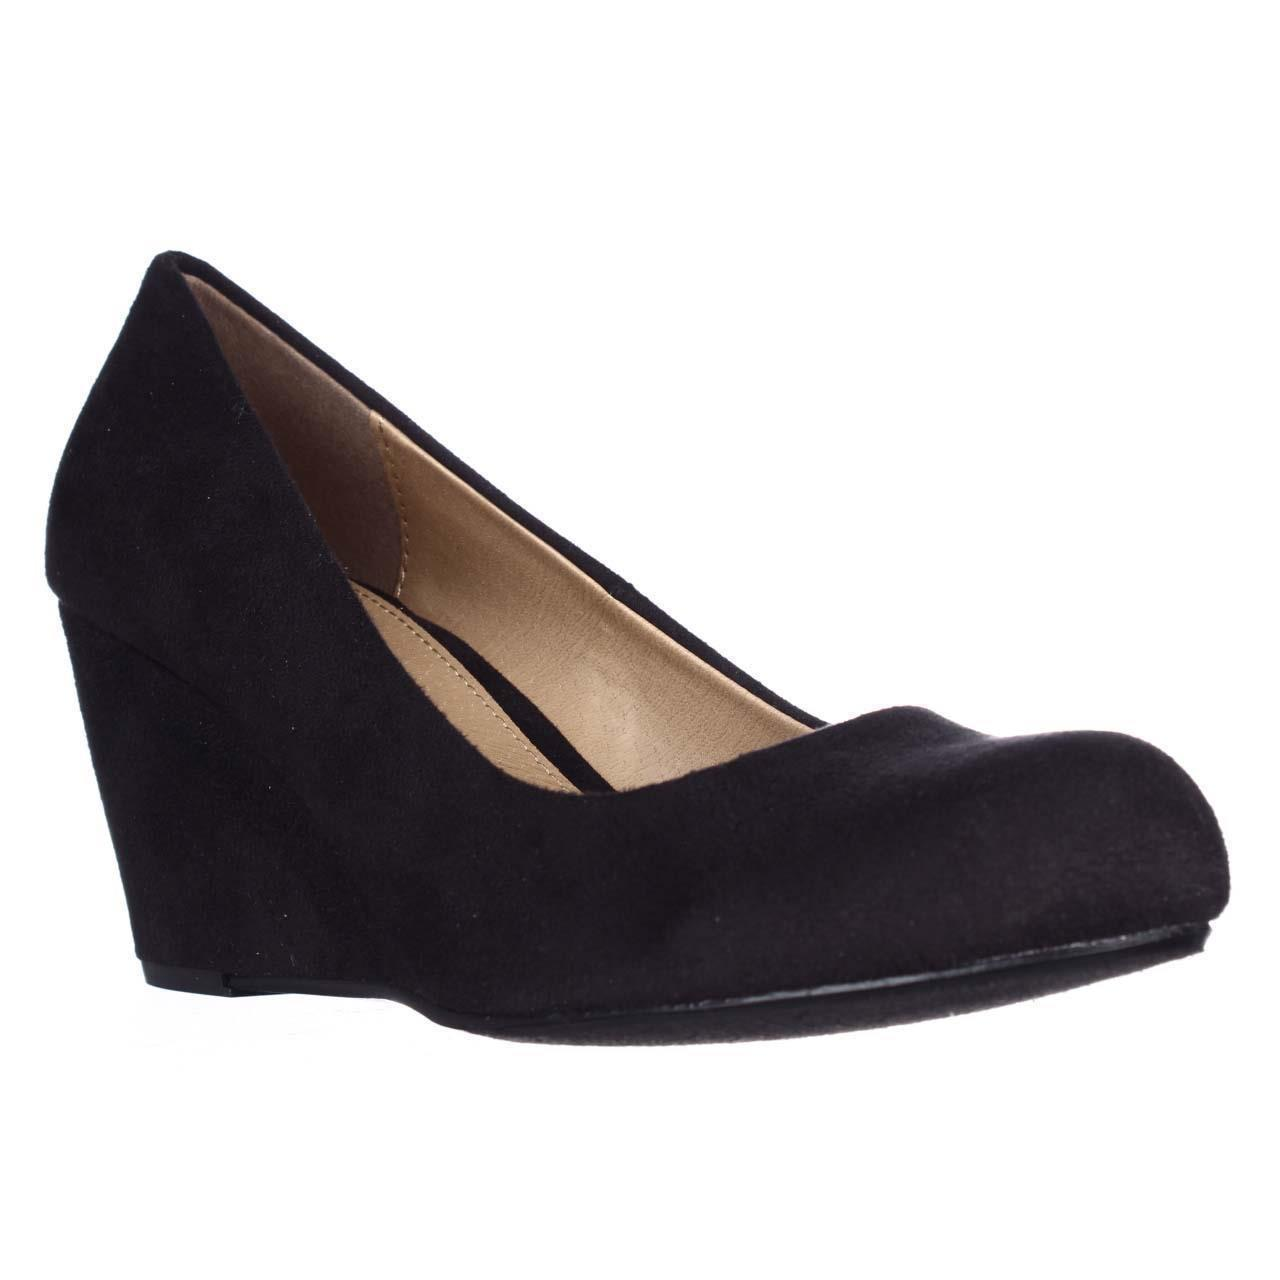 81d0e49b1ee1 Chinese Laundry Cl By Nima Wedge Pumps in Black - Lyst